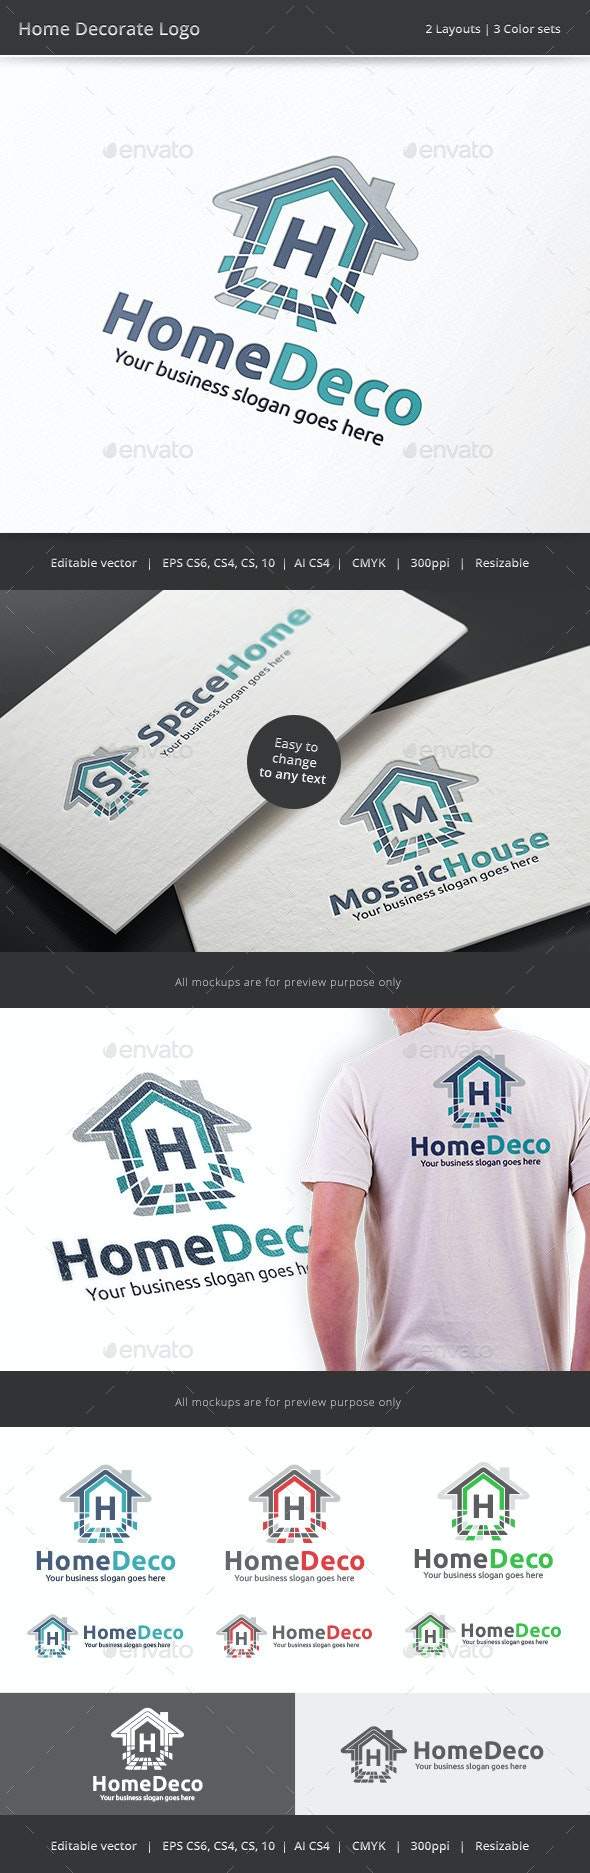 Home Decorate Logo - Objects Logo Templates